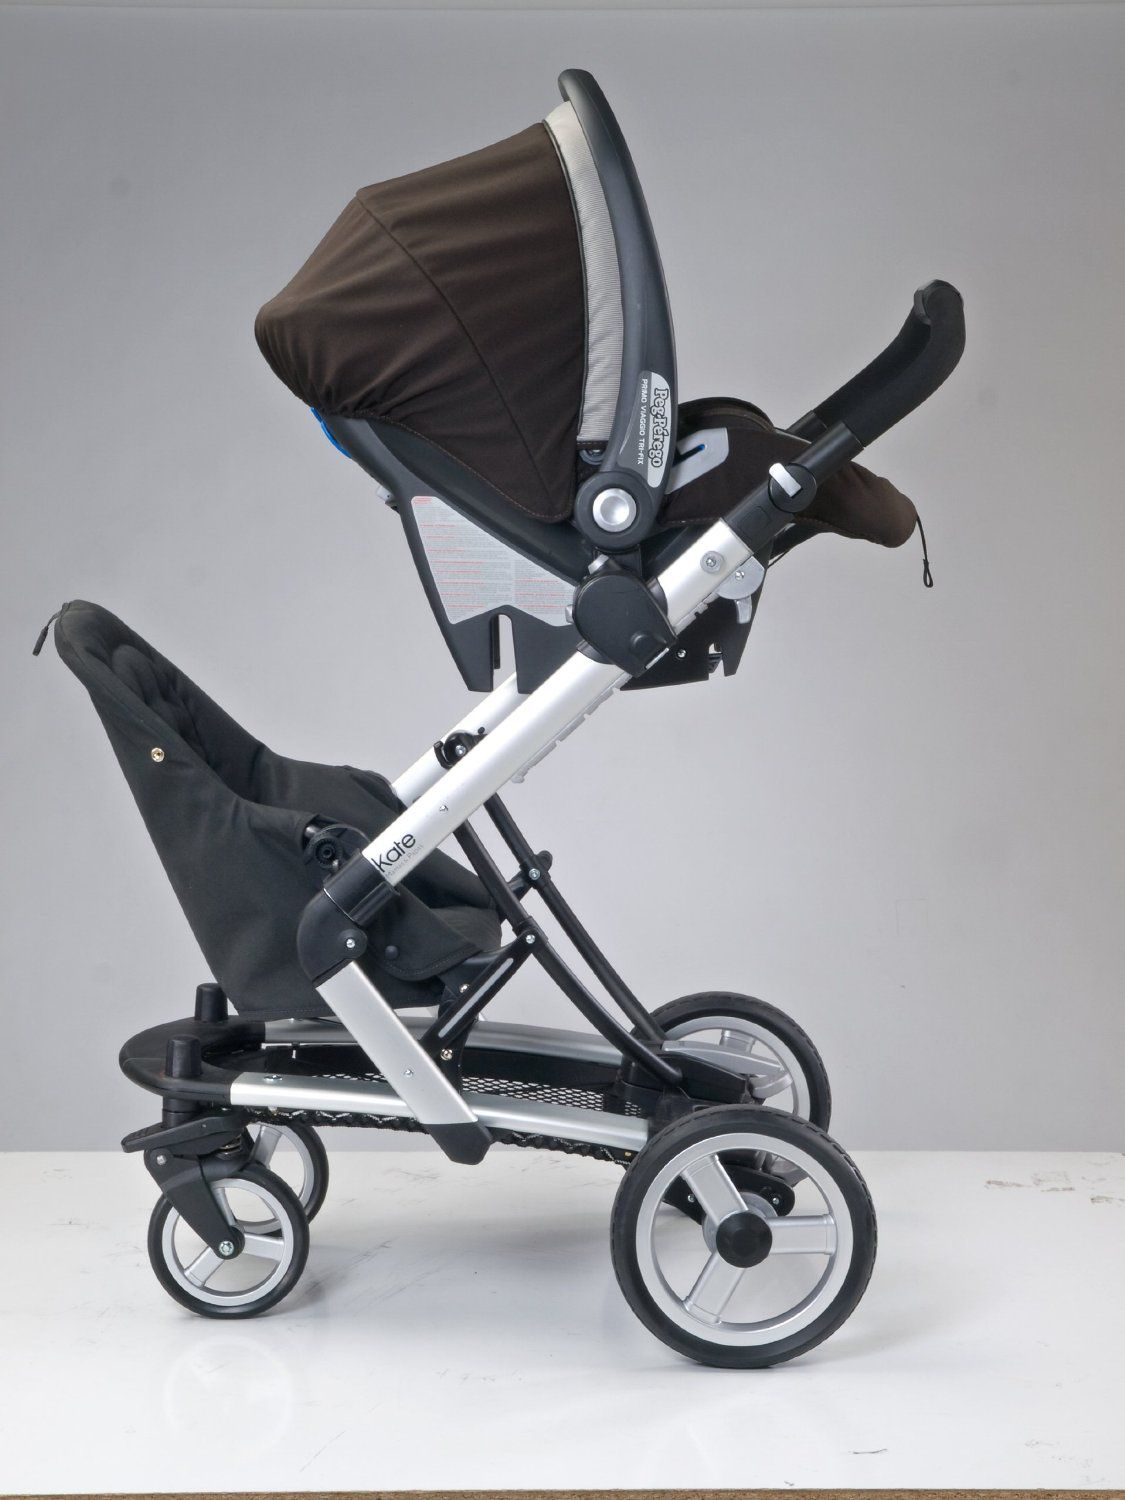 Peg Perego Stroller For Twins Amazon Peg Perego Skate Jumper Seat Black Baby For